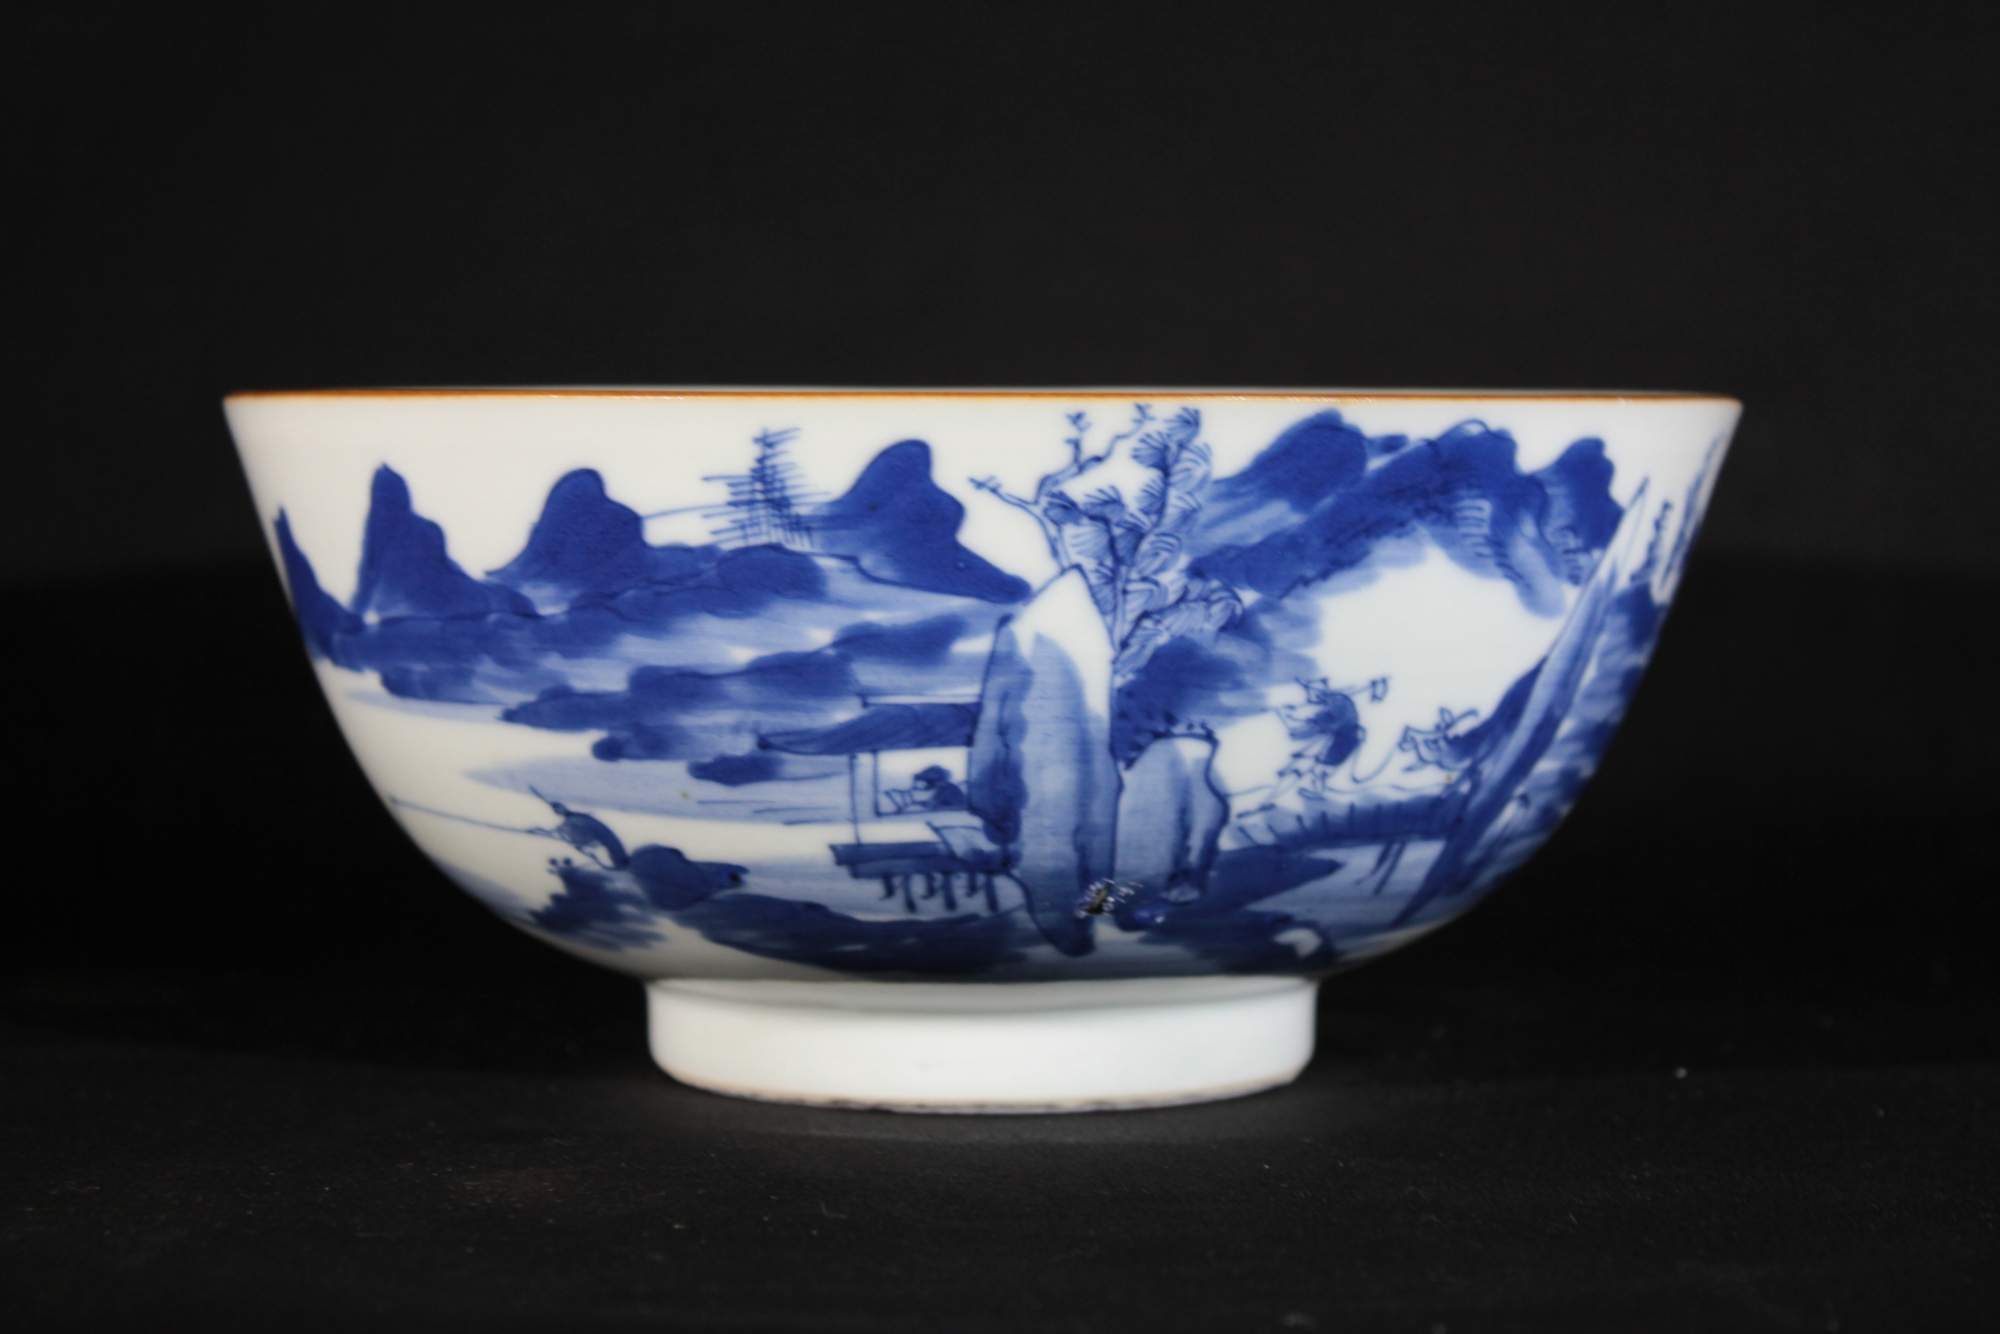 A Blue And White Porcelain Chinese Bowl With Landscape